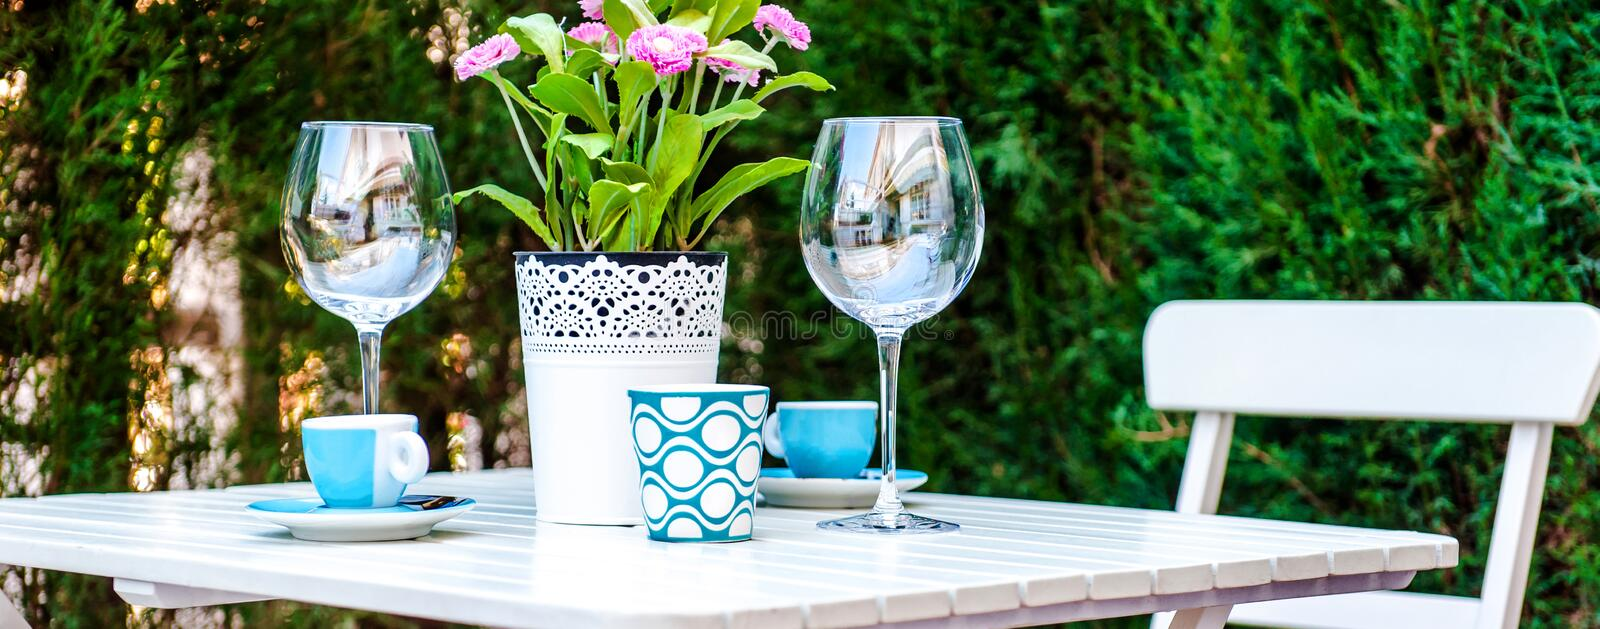 Panorama table setting with a wine glasses, cups and flowers in a pot royalty free stock photos